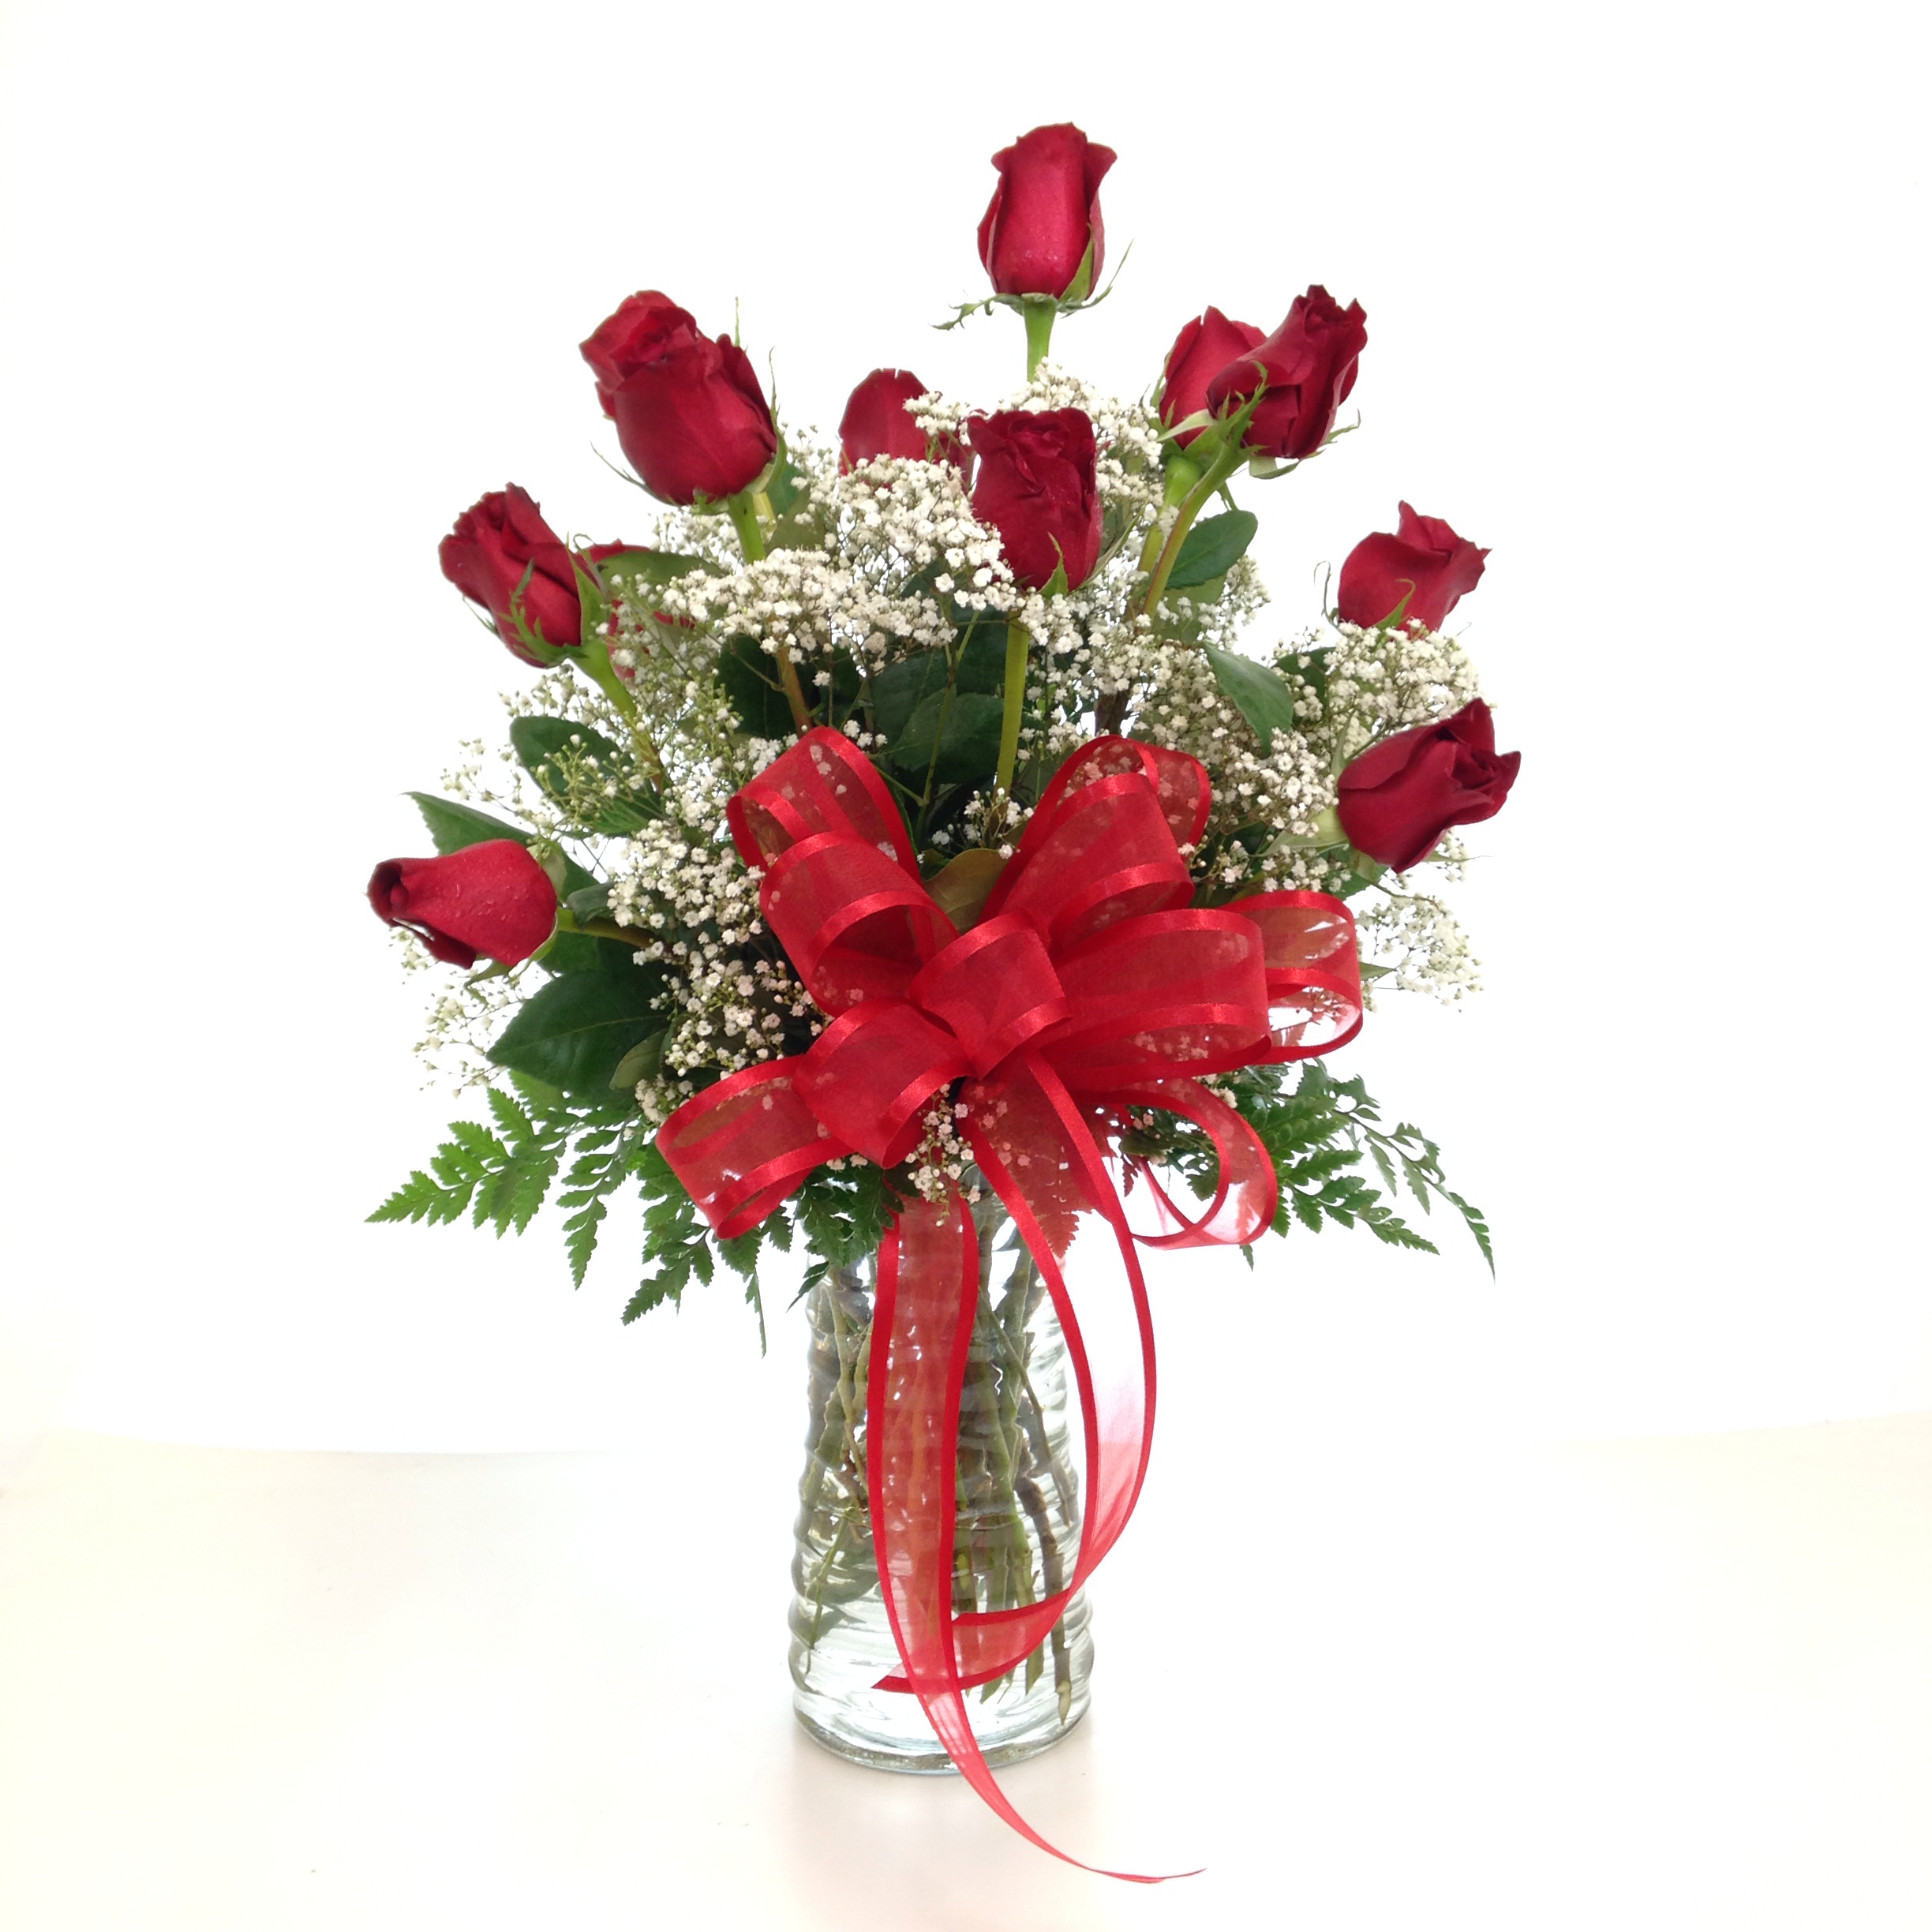 Relles florist sacramento flowers flowers delivery real local one dozen premium long stem red roses with filler izmirmasajfo Images